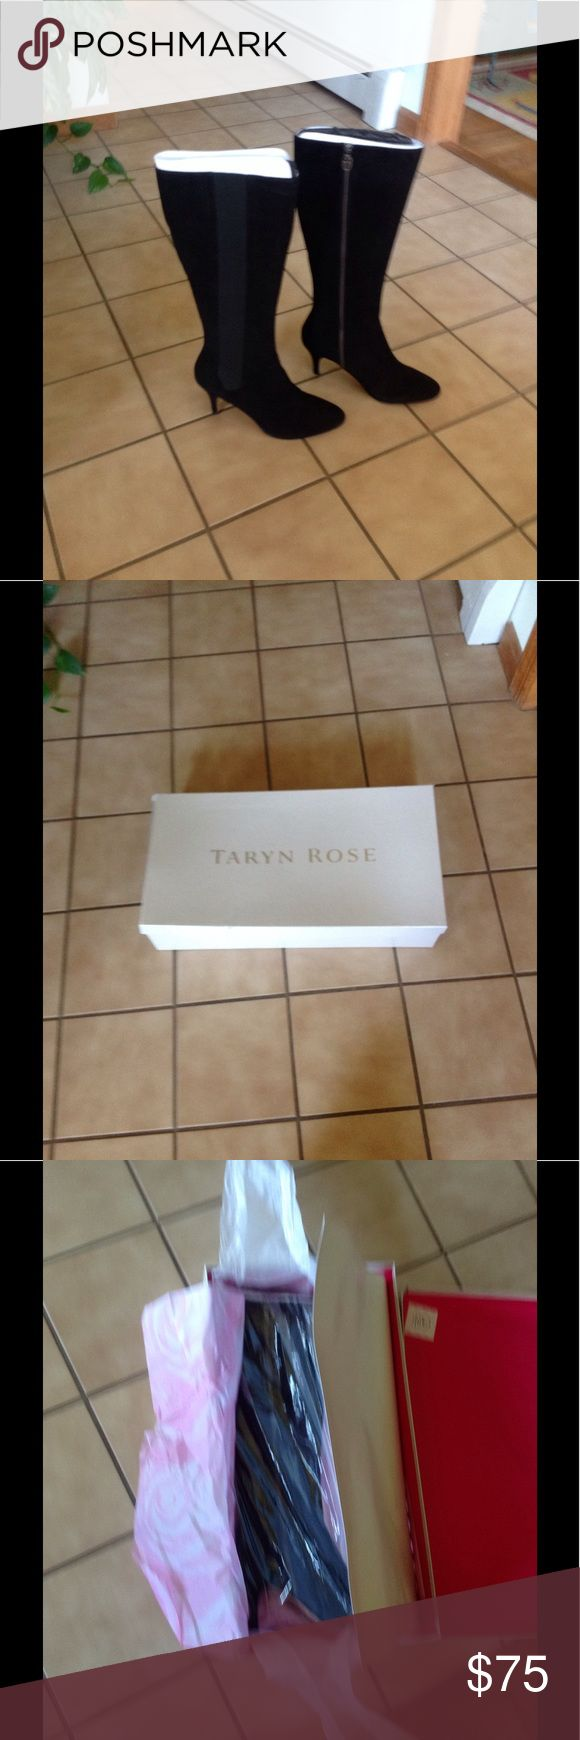 NIB. Taryn Rose suede boot Black suede Taryn Rose high heel boot.  They are brand new...only took out of the box to show you a picture of them.  Size 10M.  Style is Theresa Taryn Rose Shoes Heeled Boots